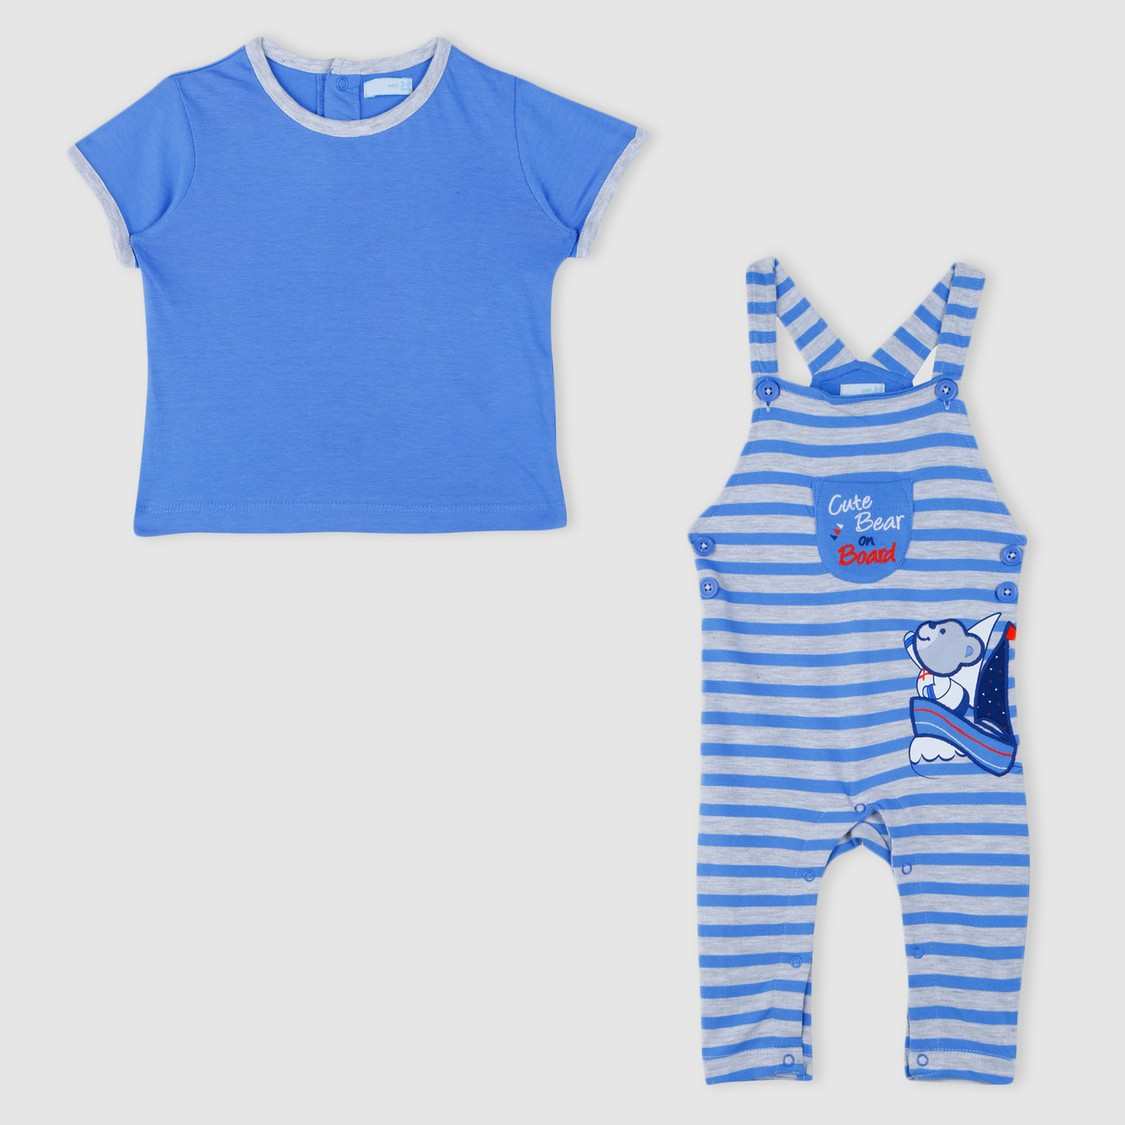 Embroidered T-Shirt and Dungaree Set